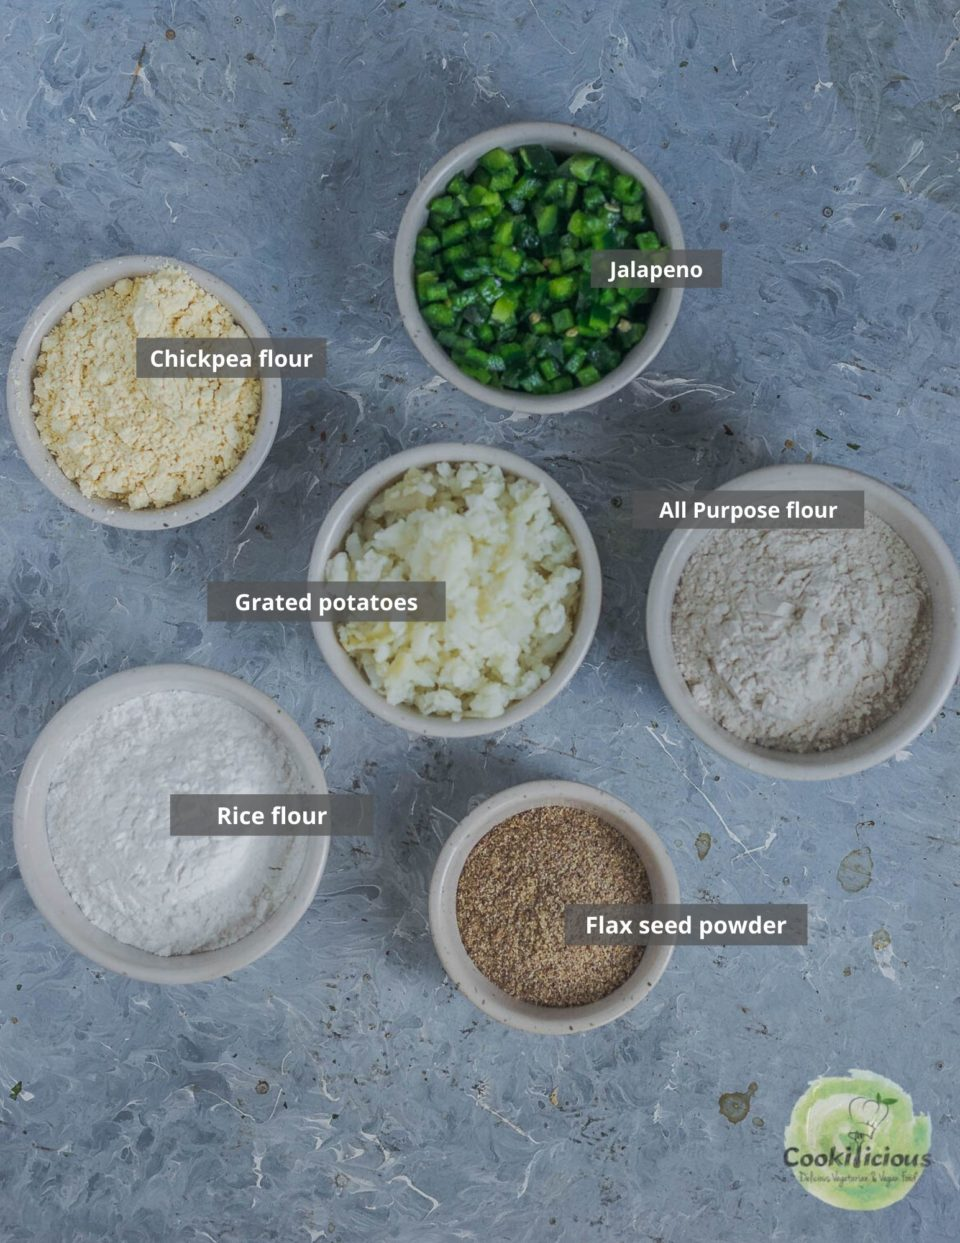 all the ingredients needed to make Instant Potato Dosa (a South Indian breakfast) placed in a tray